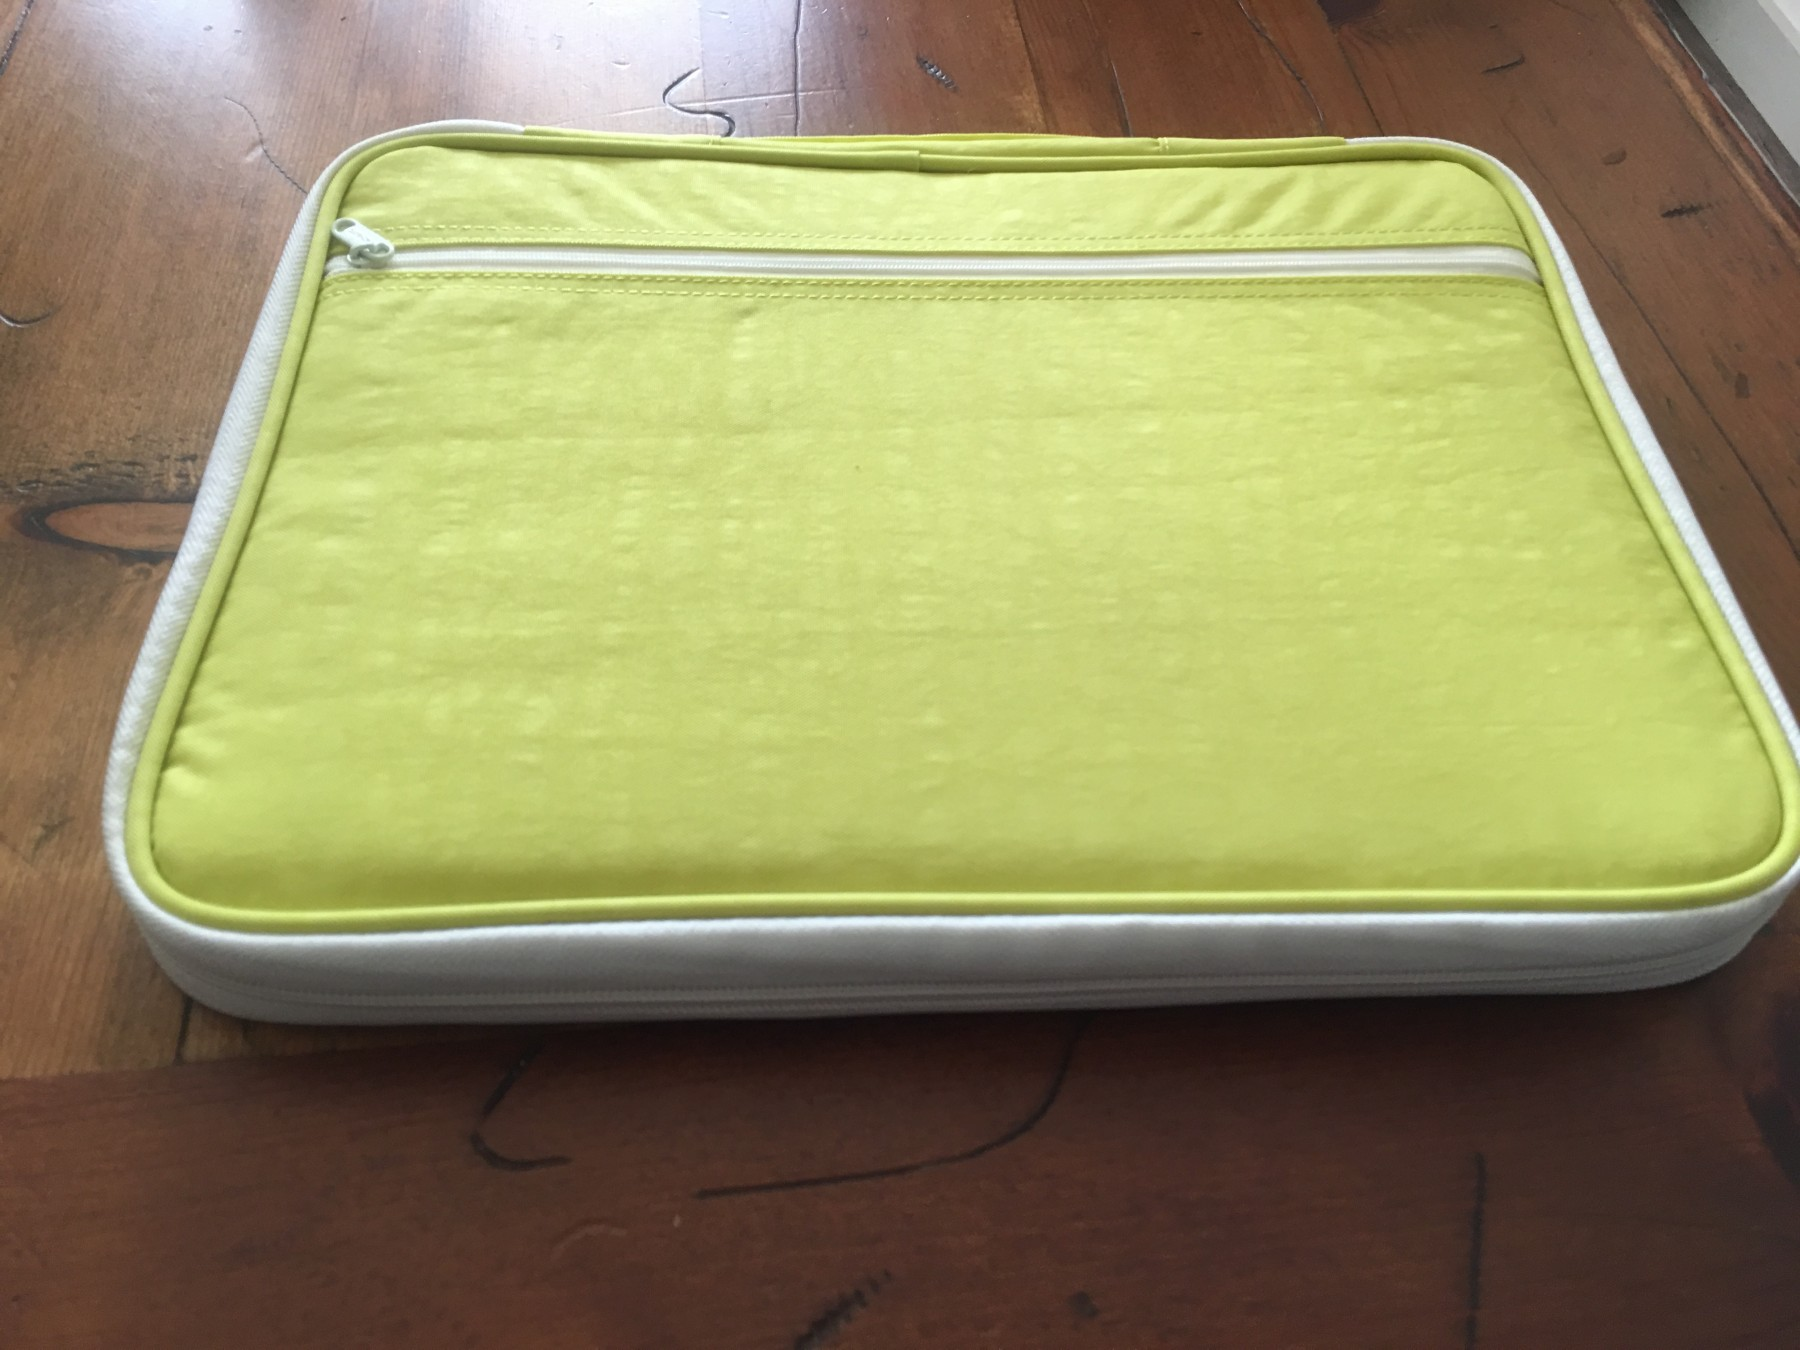 Great carrying case for tablets